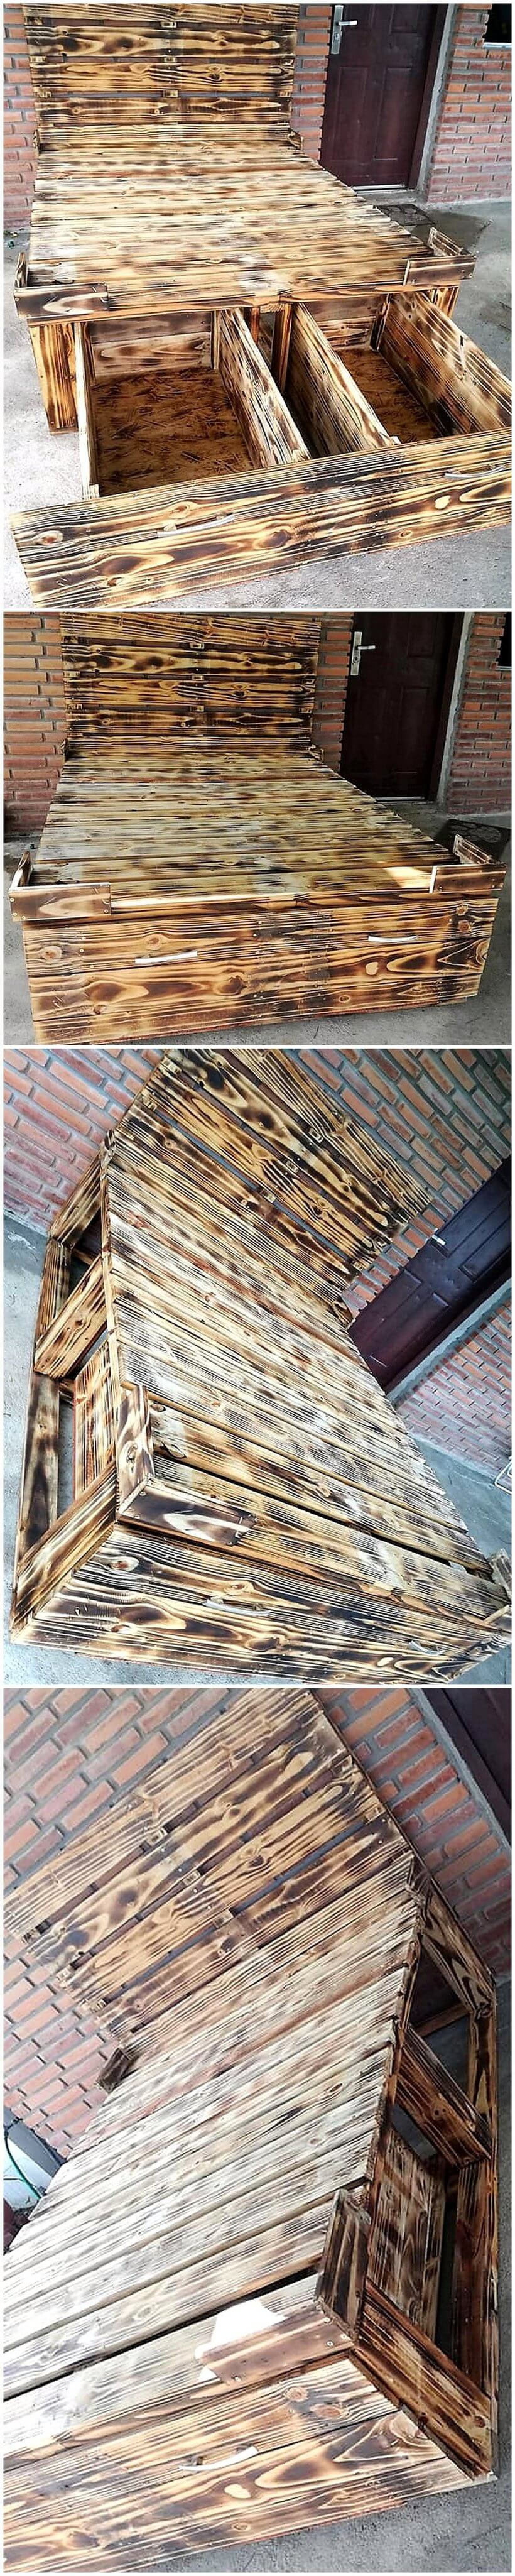 recycled pallets wooden bed